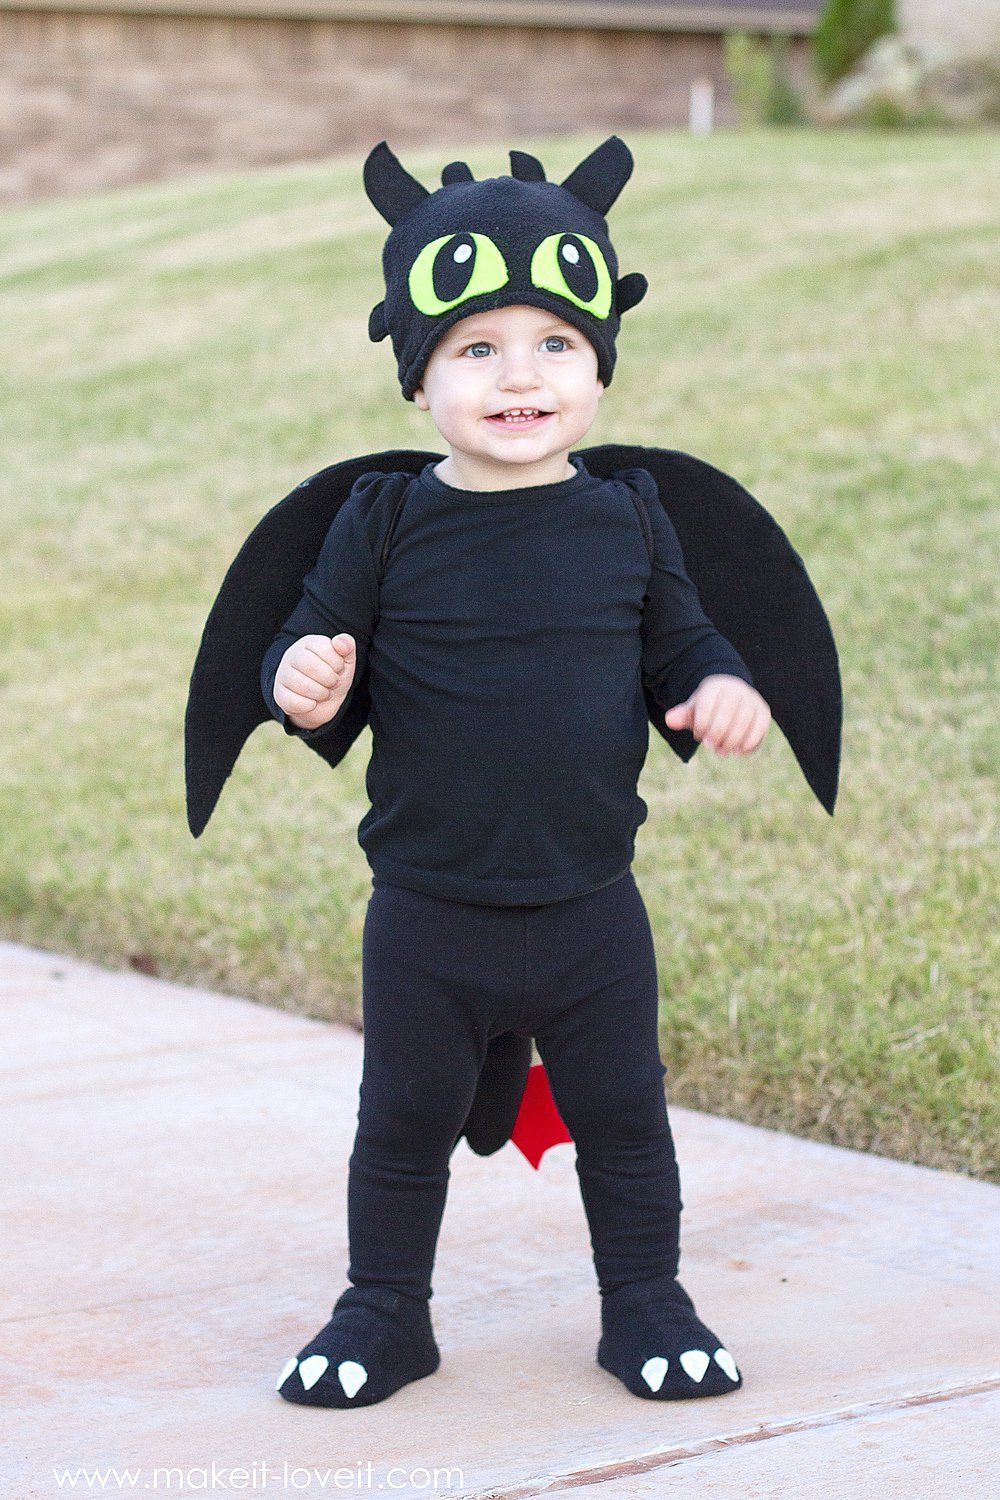 Diy toothless costume from how to train your dragon a for Easy toddler boy halloween costumes